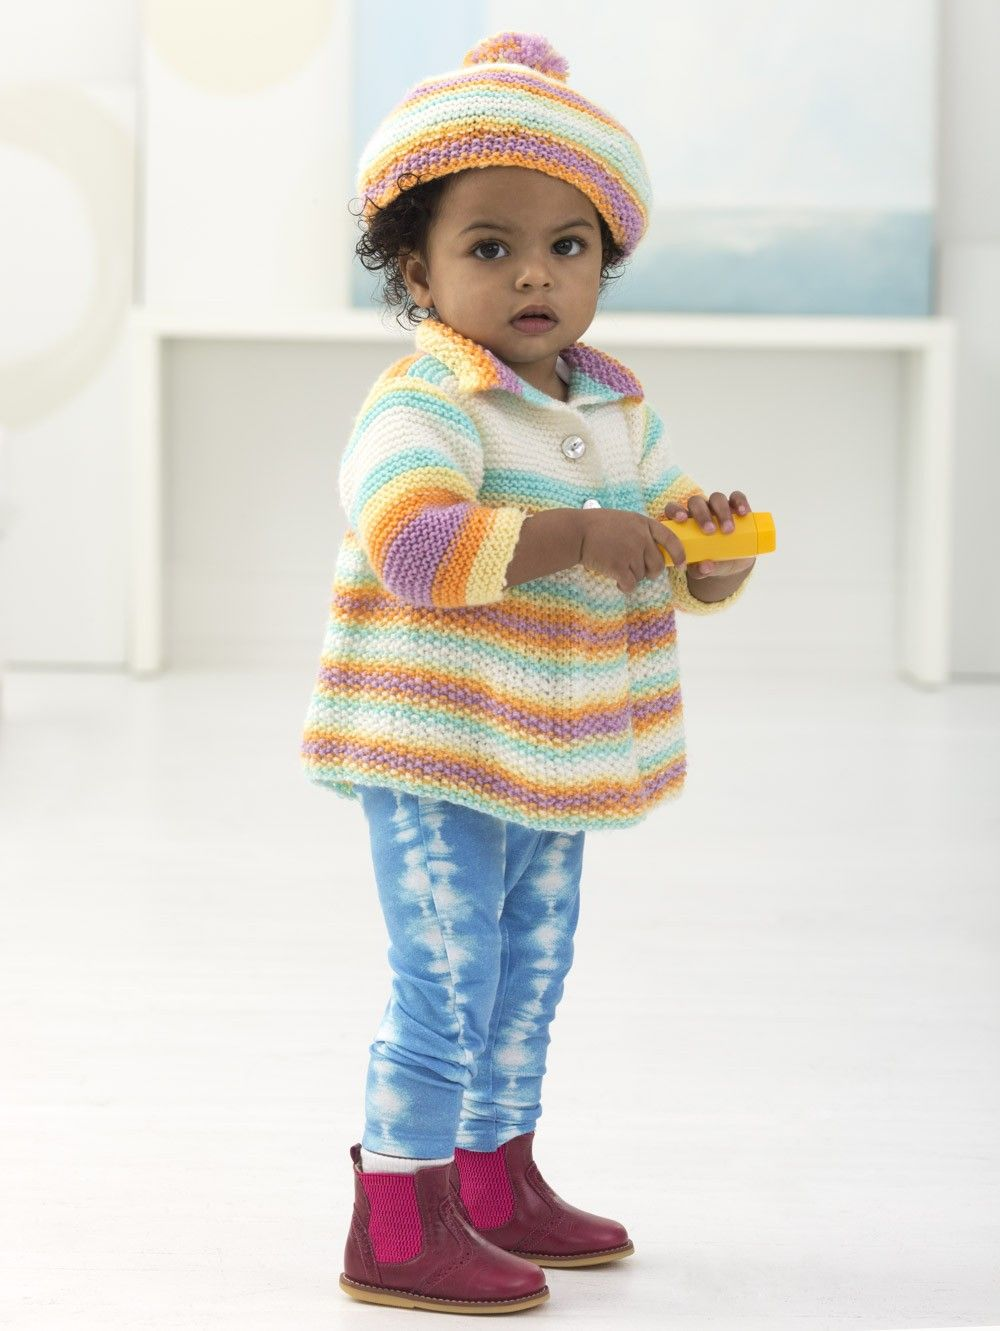 525ded485e65 The 6 Best Baby Yarns + Patterns to Get Crafting